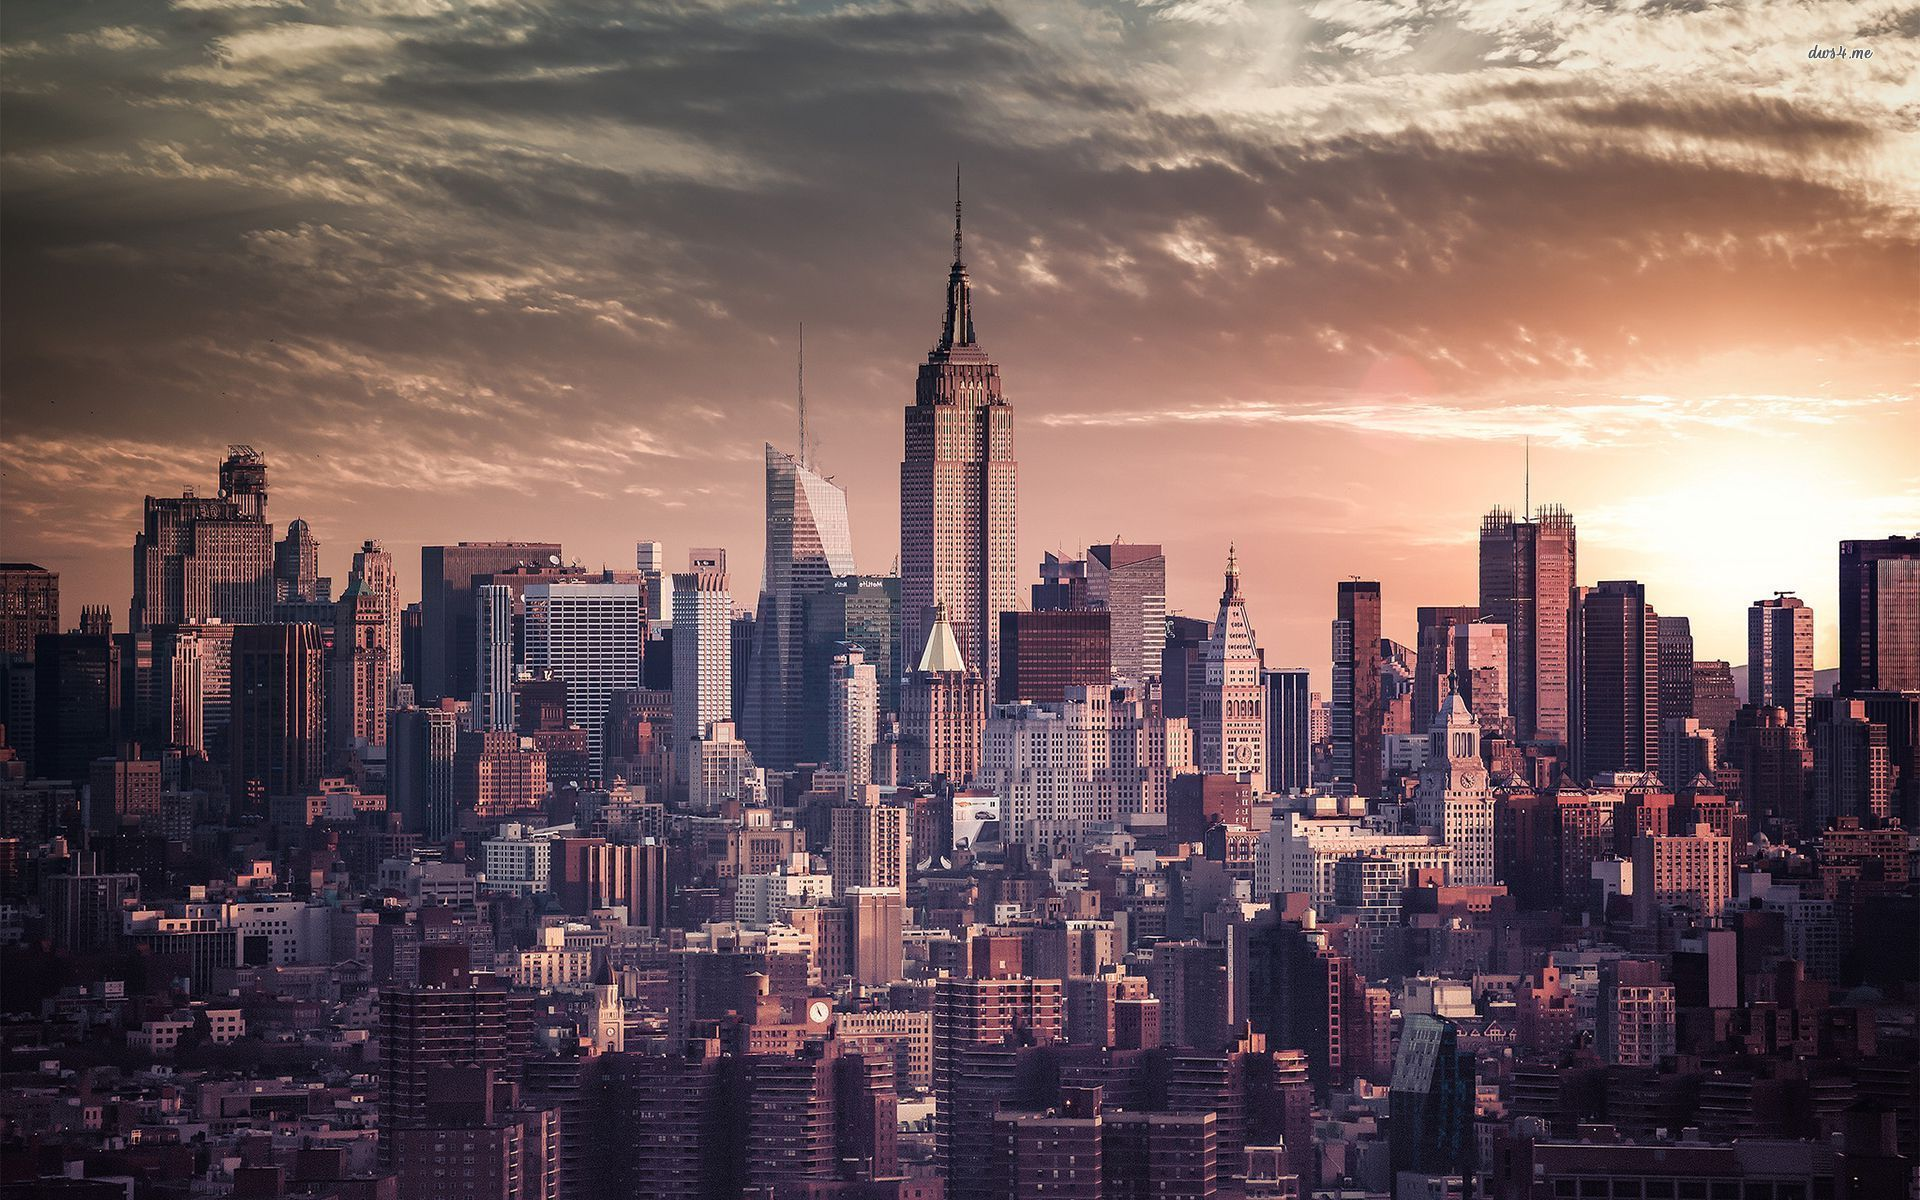 New York City Wallpaper 37 Wallpapers – Adorable Wallpapers